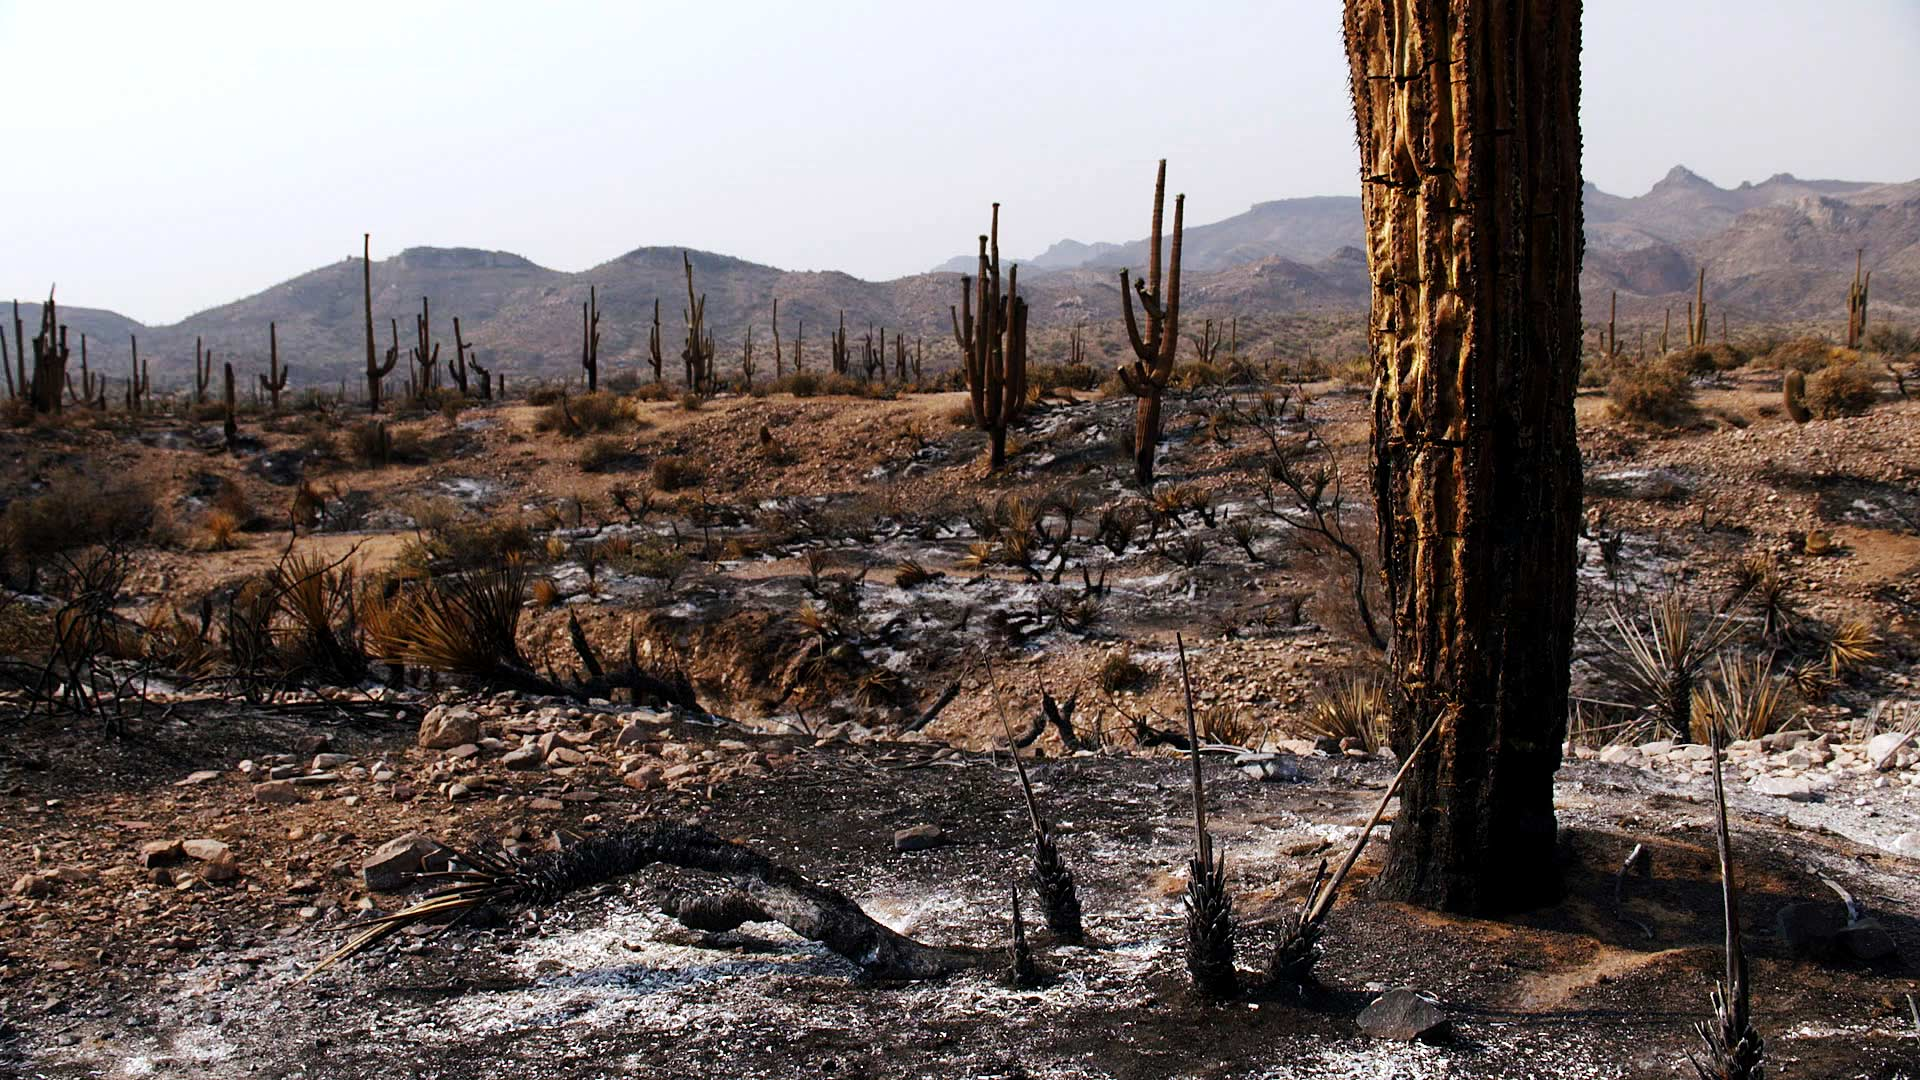 Scorched saguaros and desert landscape from the Telegraph Fire that started June 4, 2021 and spread across areas of Pinal and Gila counties. June 2021.